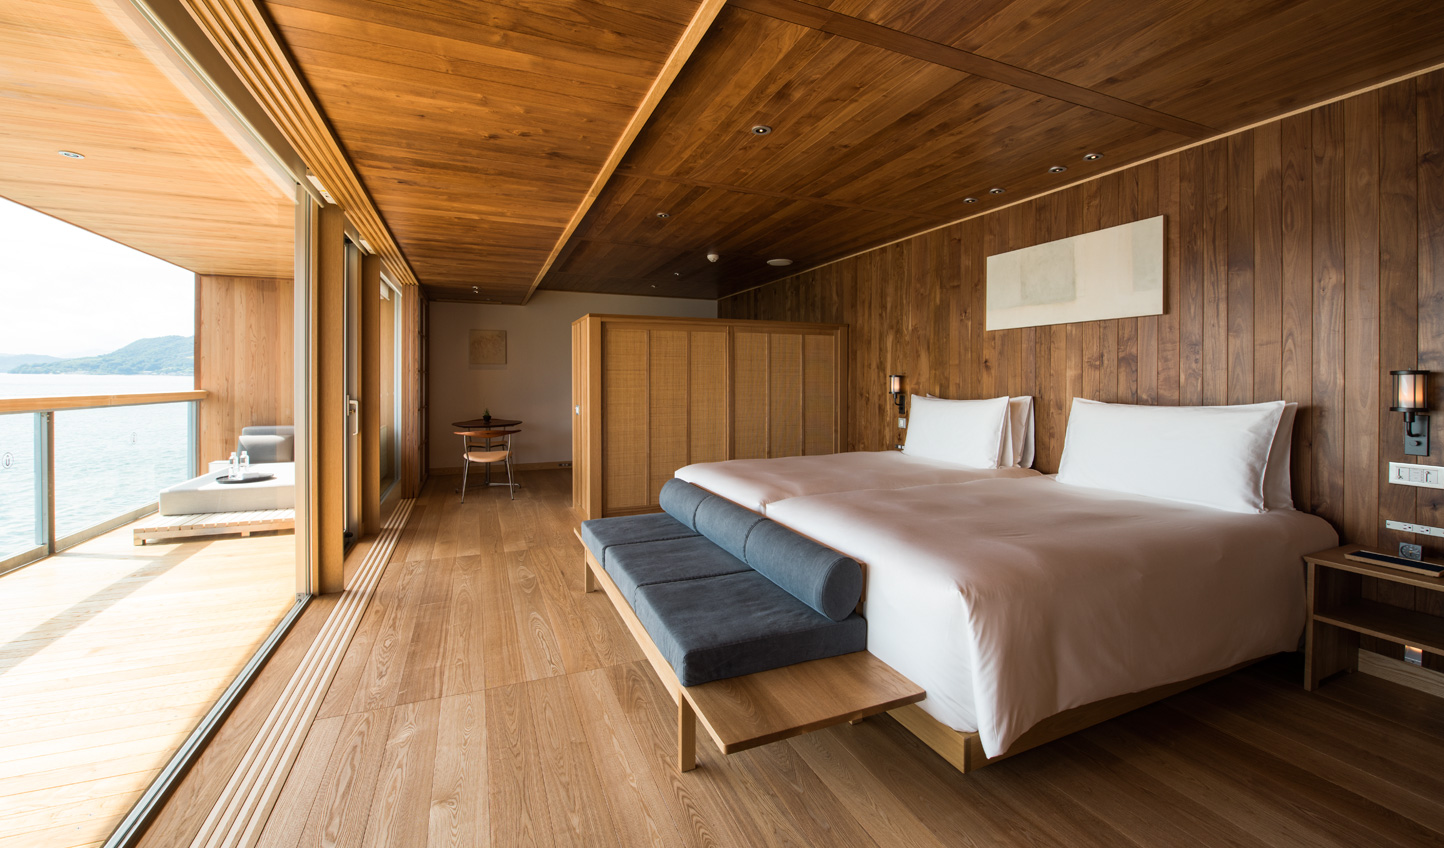 Stylish minimalism evokes a sense of calm in your cabin suite